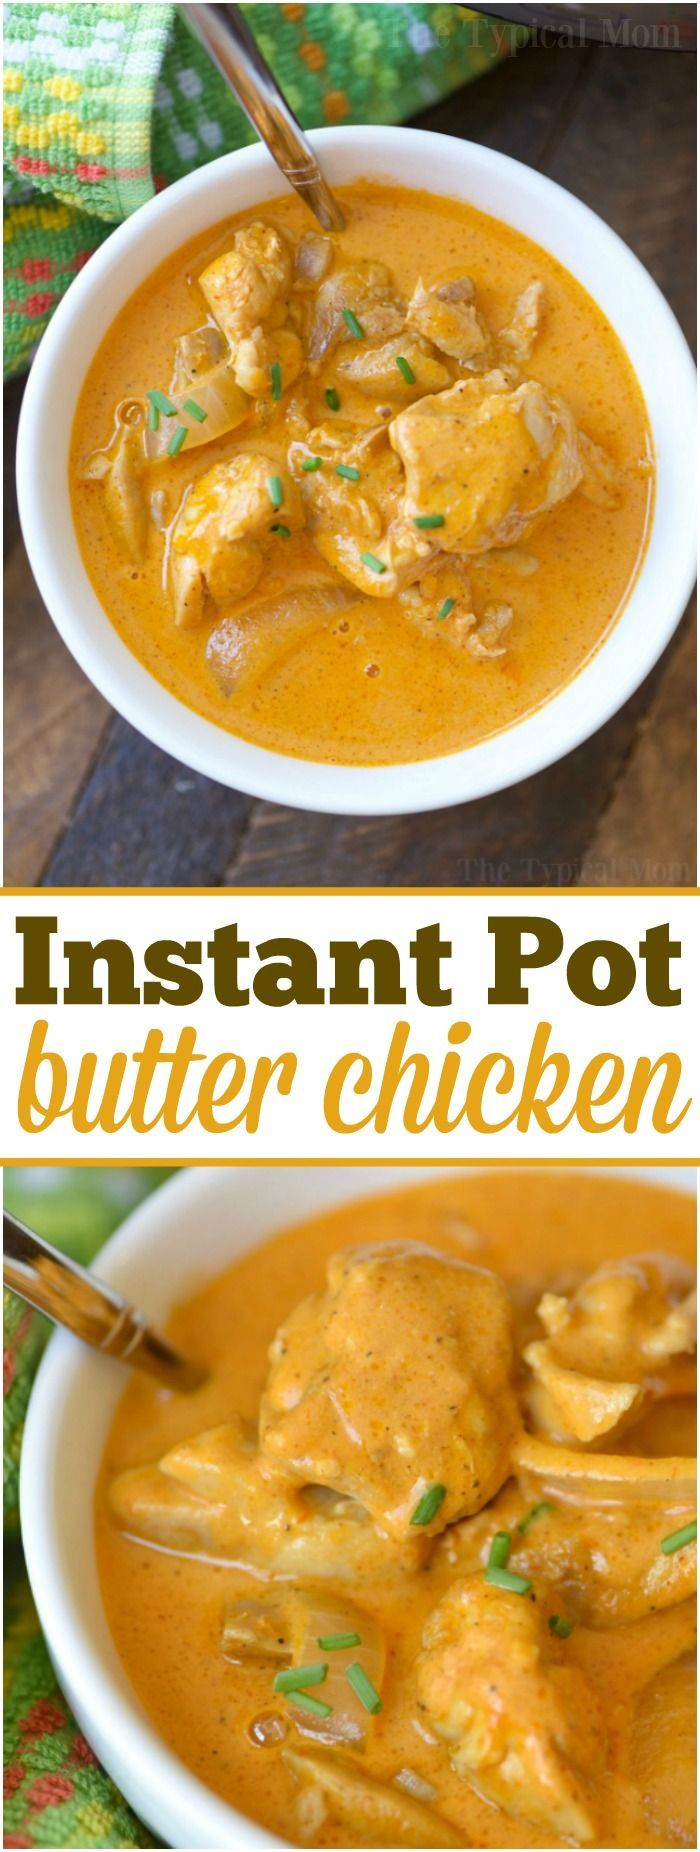 This easy Instant Pot butter chicken recipe is moist and full of flavor. Only taking 5 minutes to cook it's quick and a perfect dinner with a side of naan. via @thetypicalmom